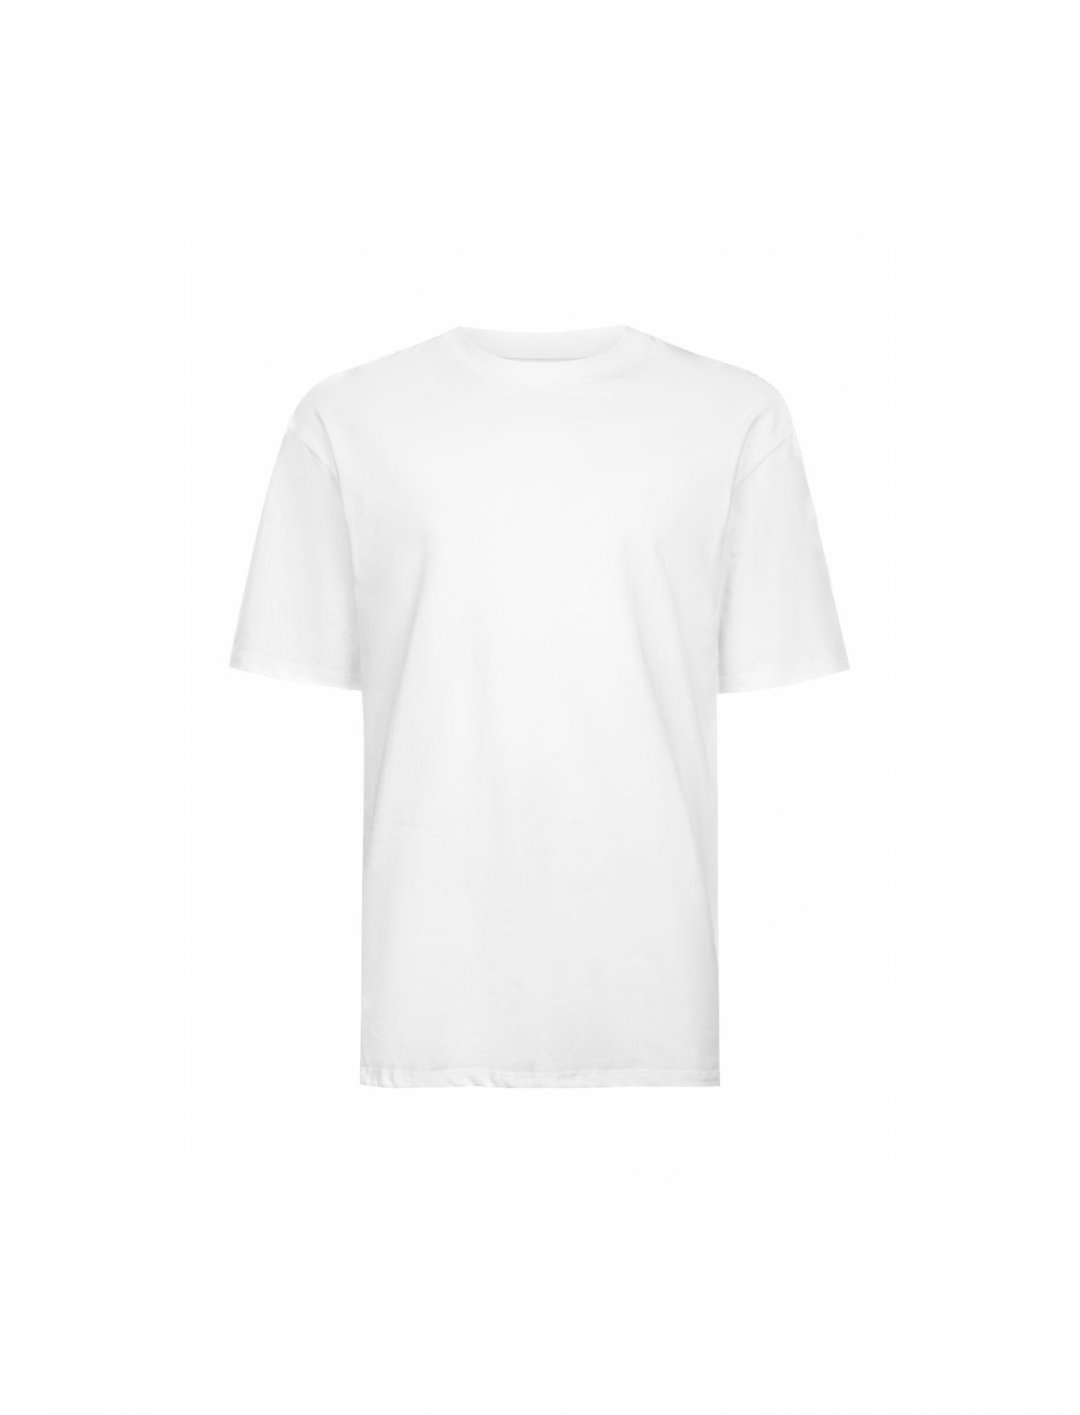 "Justin Timberlake's White T-Shirt {""id"":5,""product_section_id"":1,""name"":""Clothing"",""order"":5} Topman"